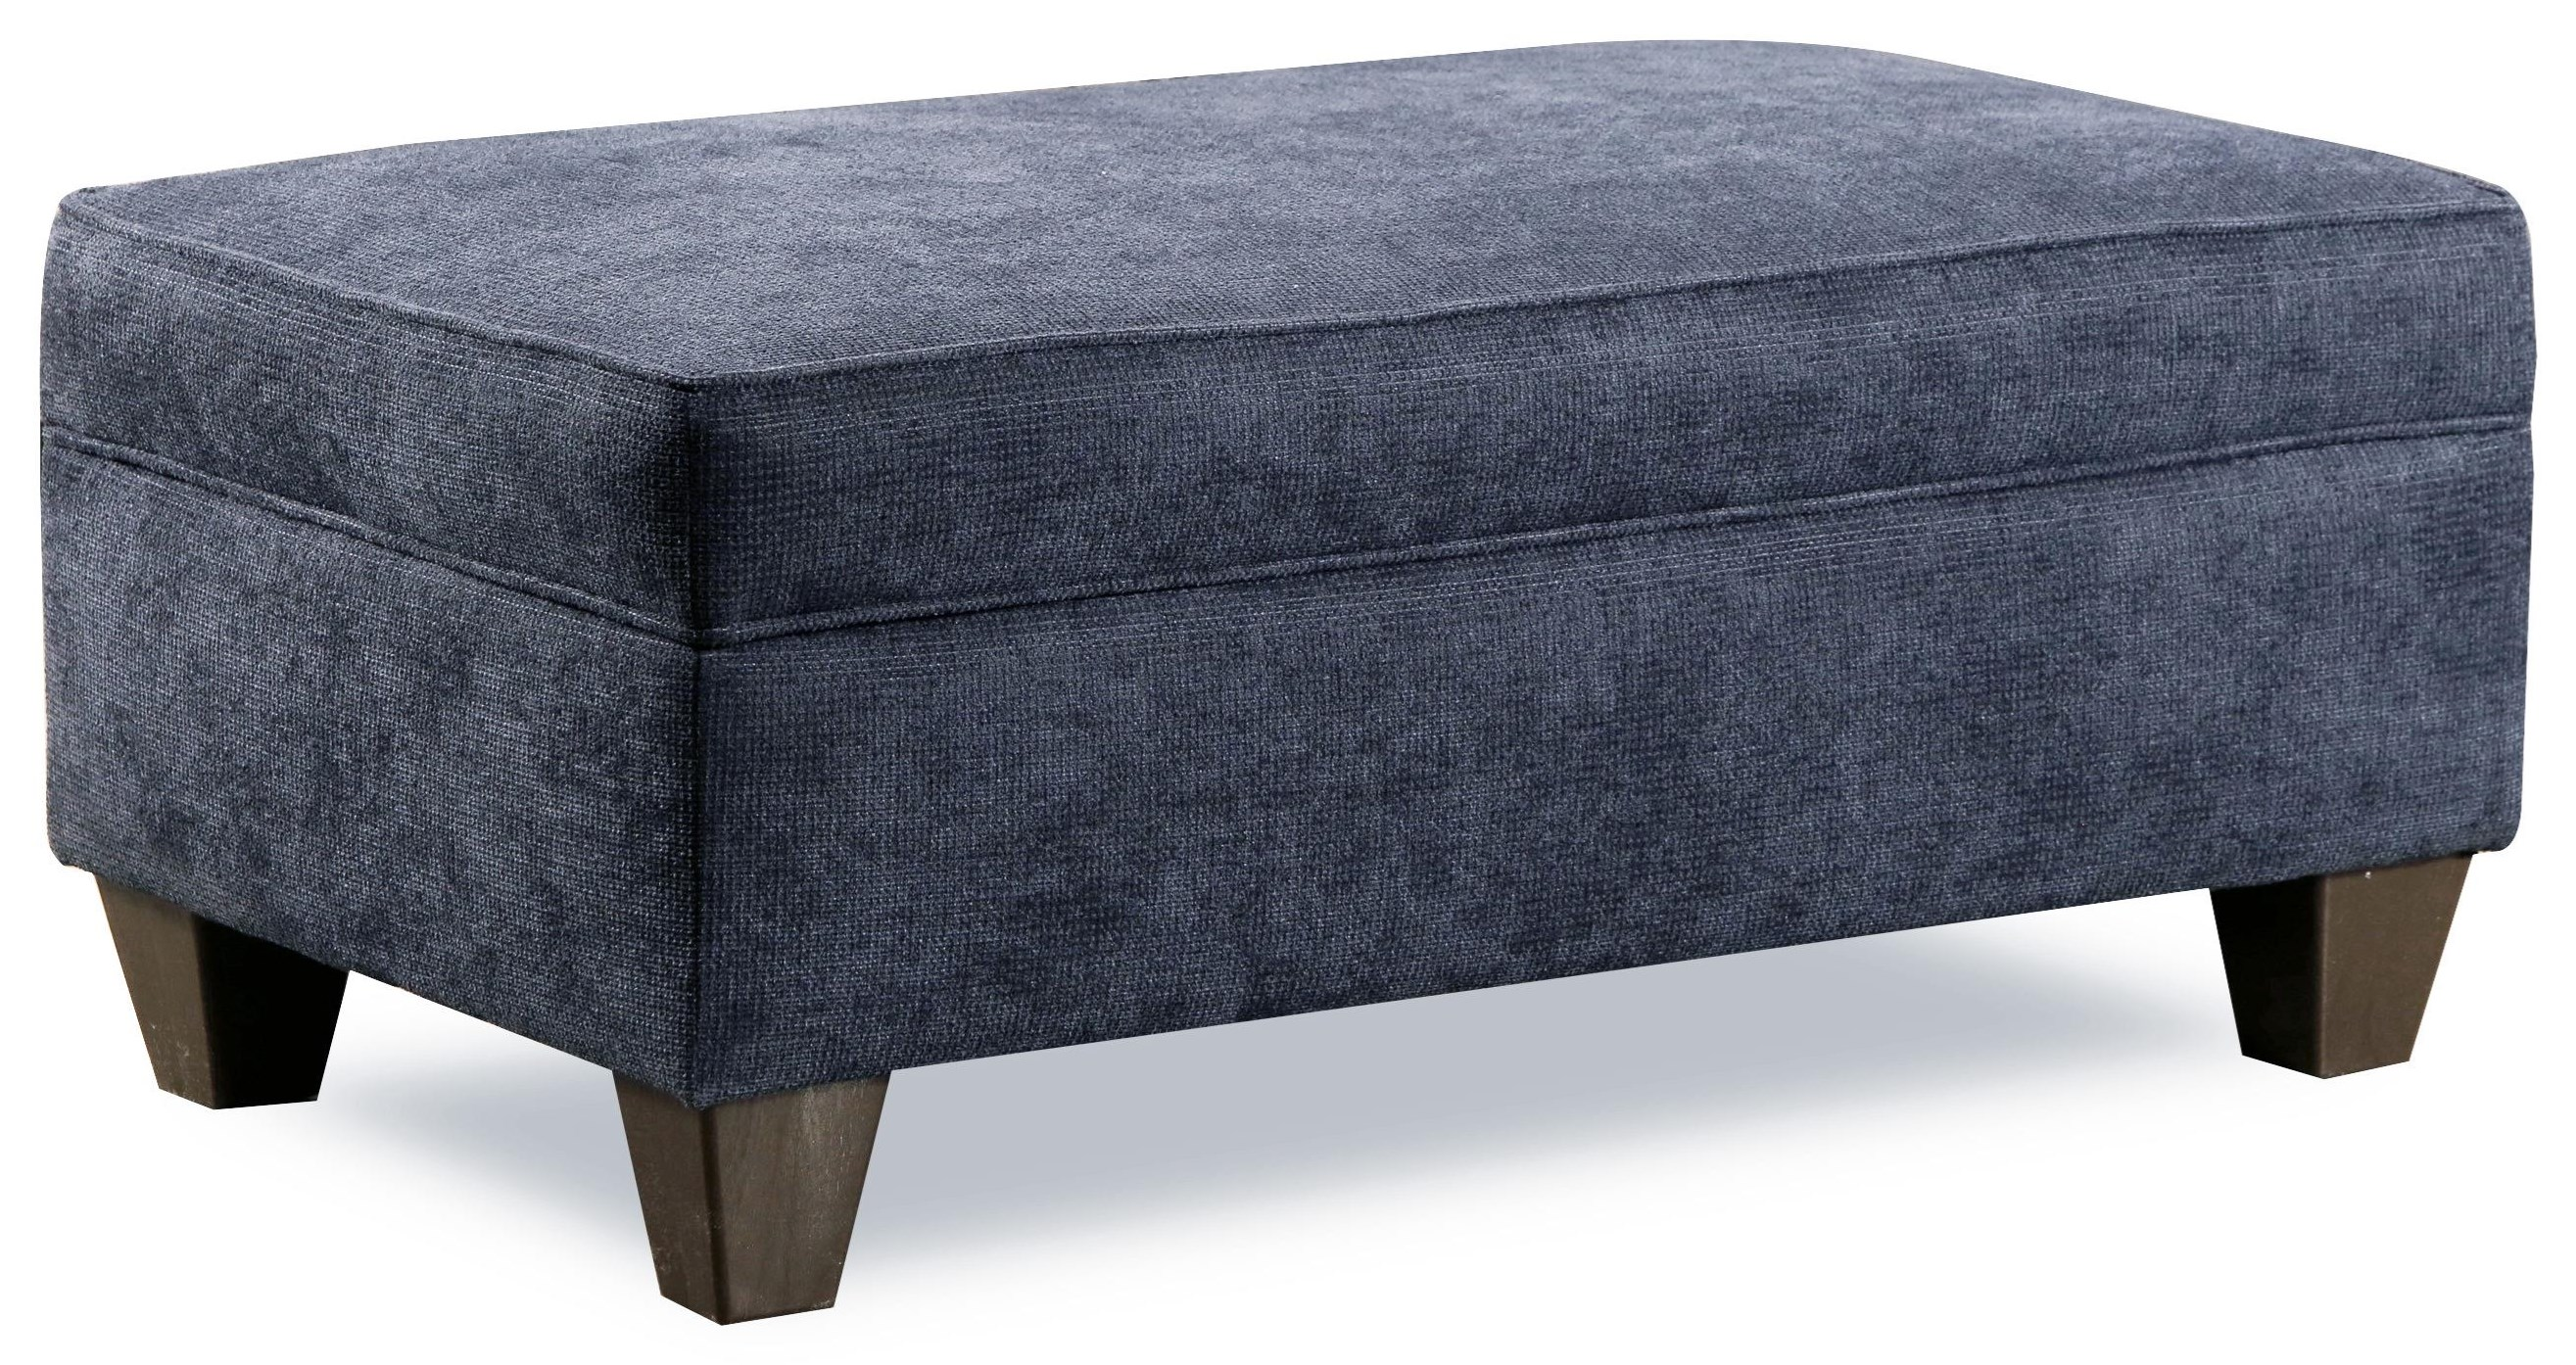 7081 Storage Ottoman by Lane at Value City Furniture